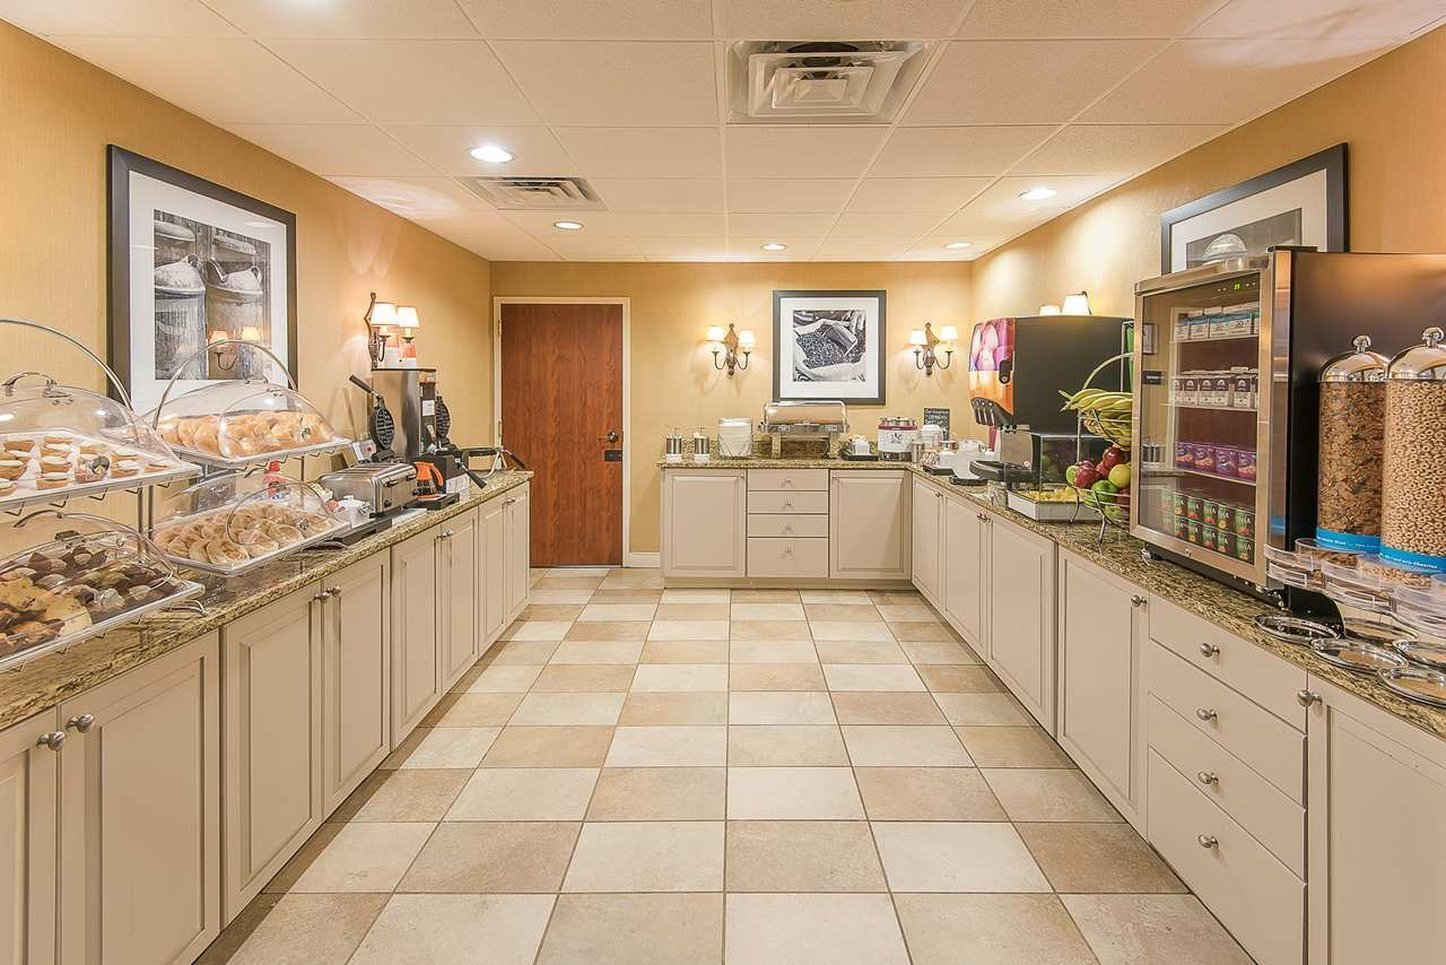 Breakfast Attendant - Hampton Inn Salisbury Job | Hampton